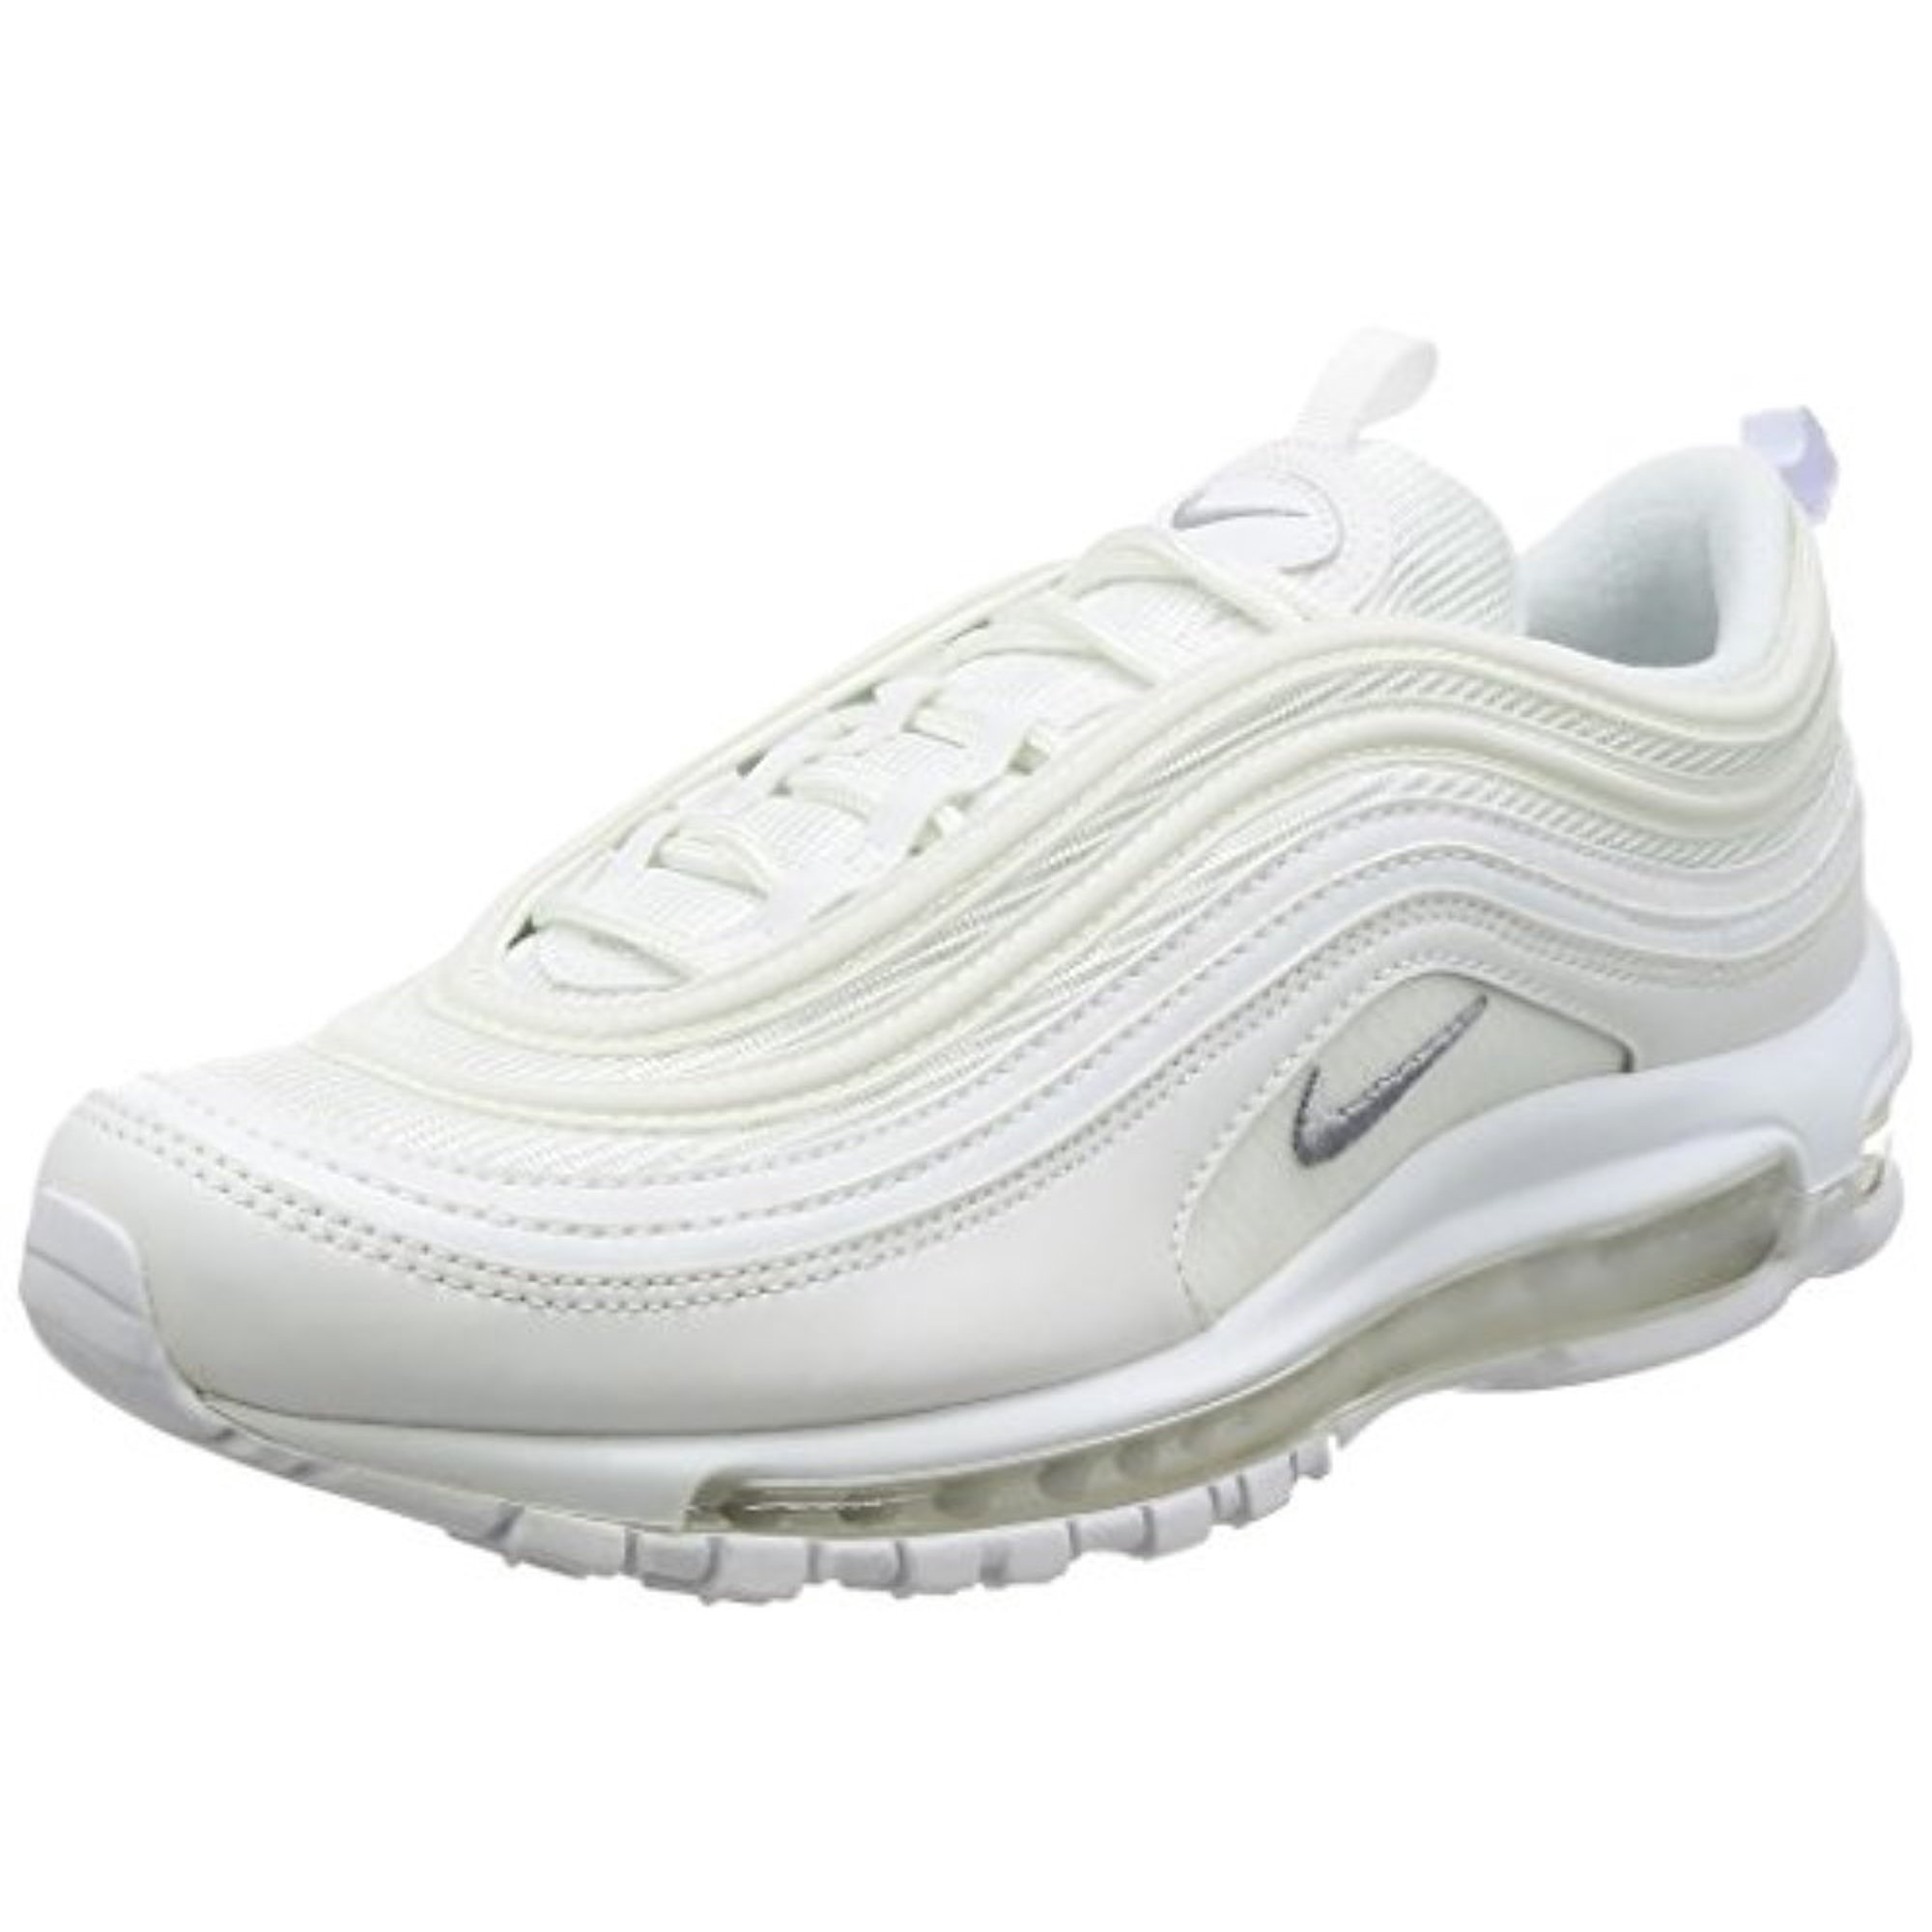 the best attitude 44a5d 37a34 Nike - Men - Nike Air Max 97 'Triple White' - 921826-101 - Size 11.5